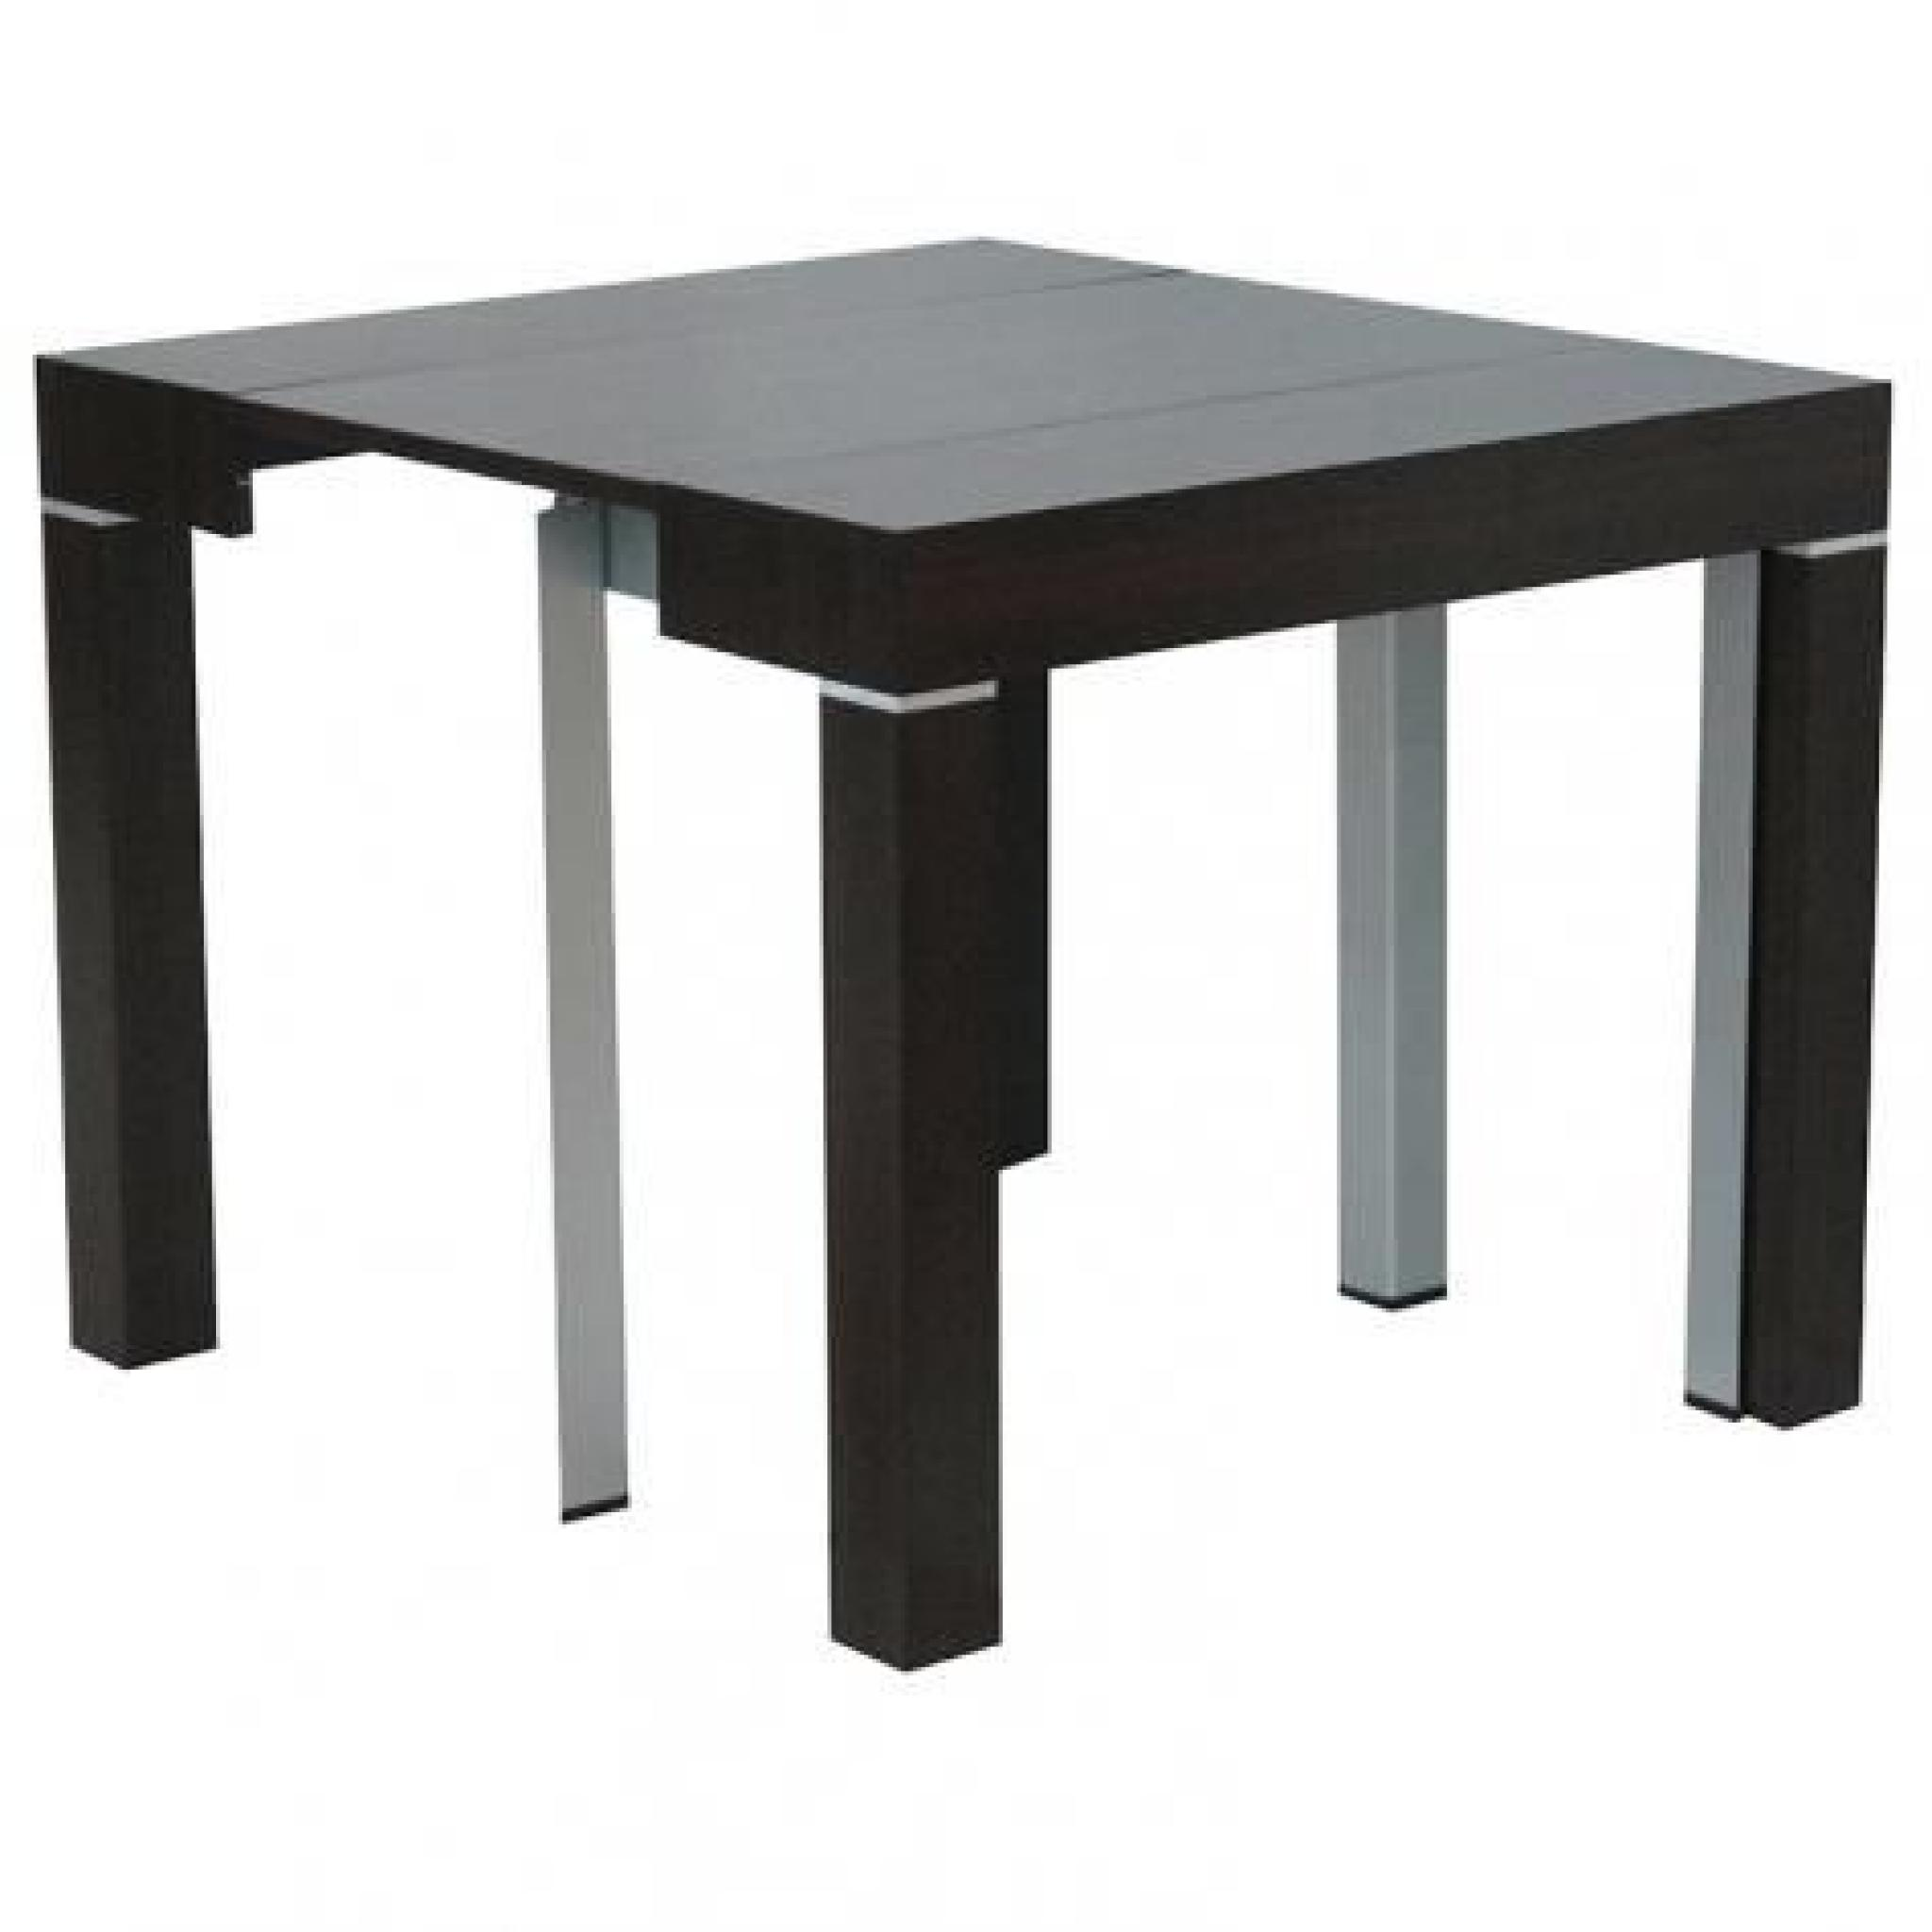 Table console extensible wenge avec 4 rallonges alesia for Table a rallonge console